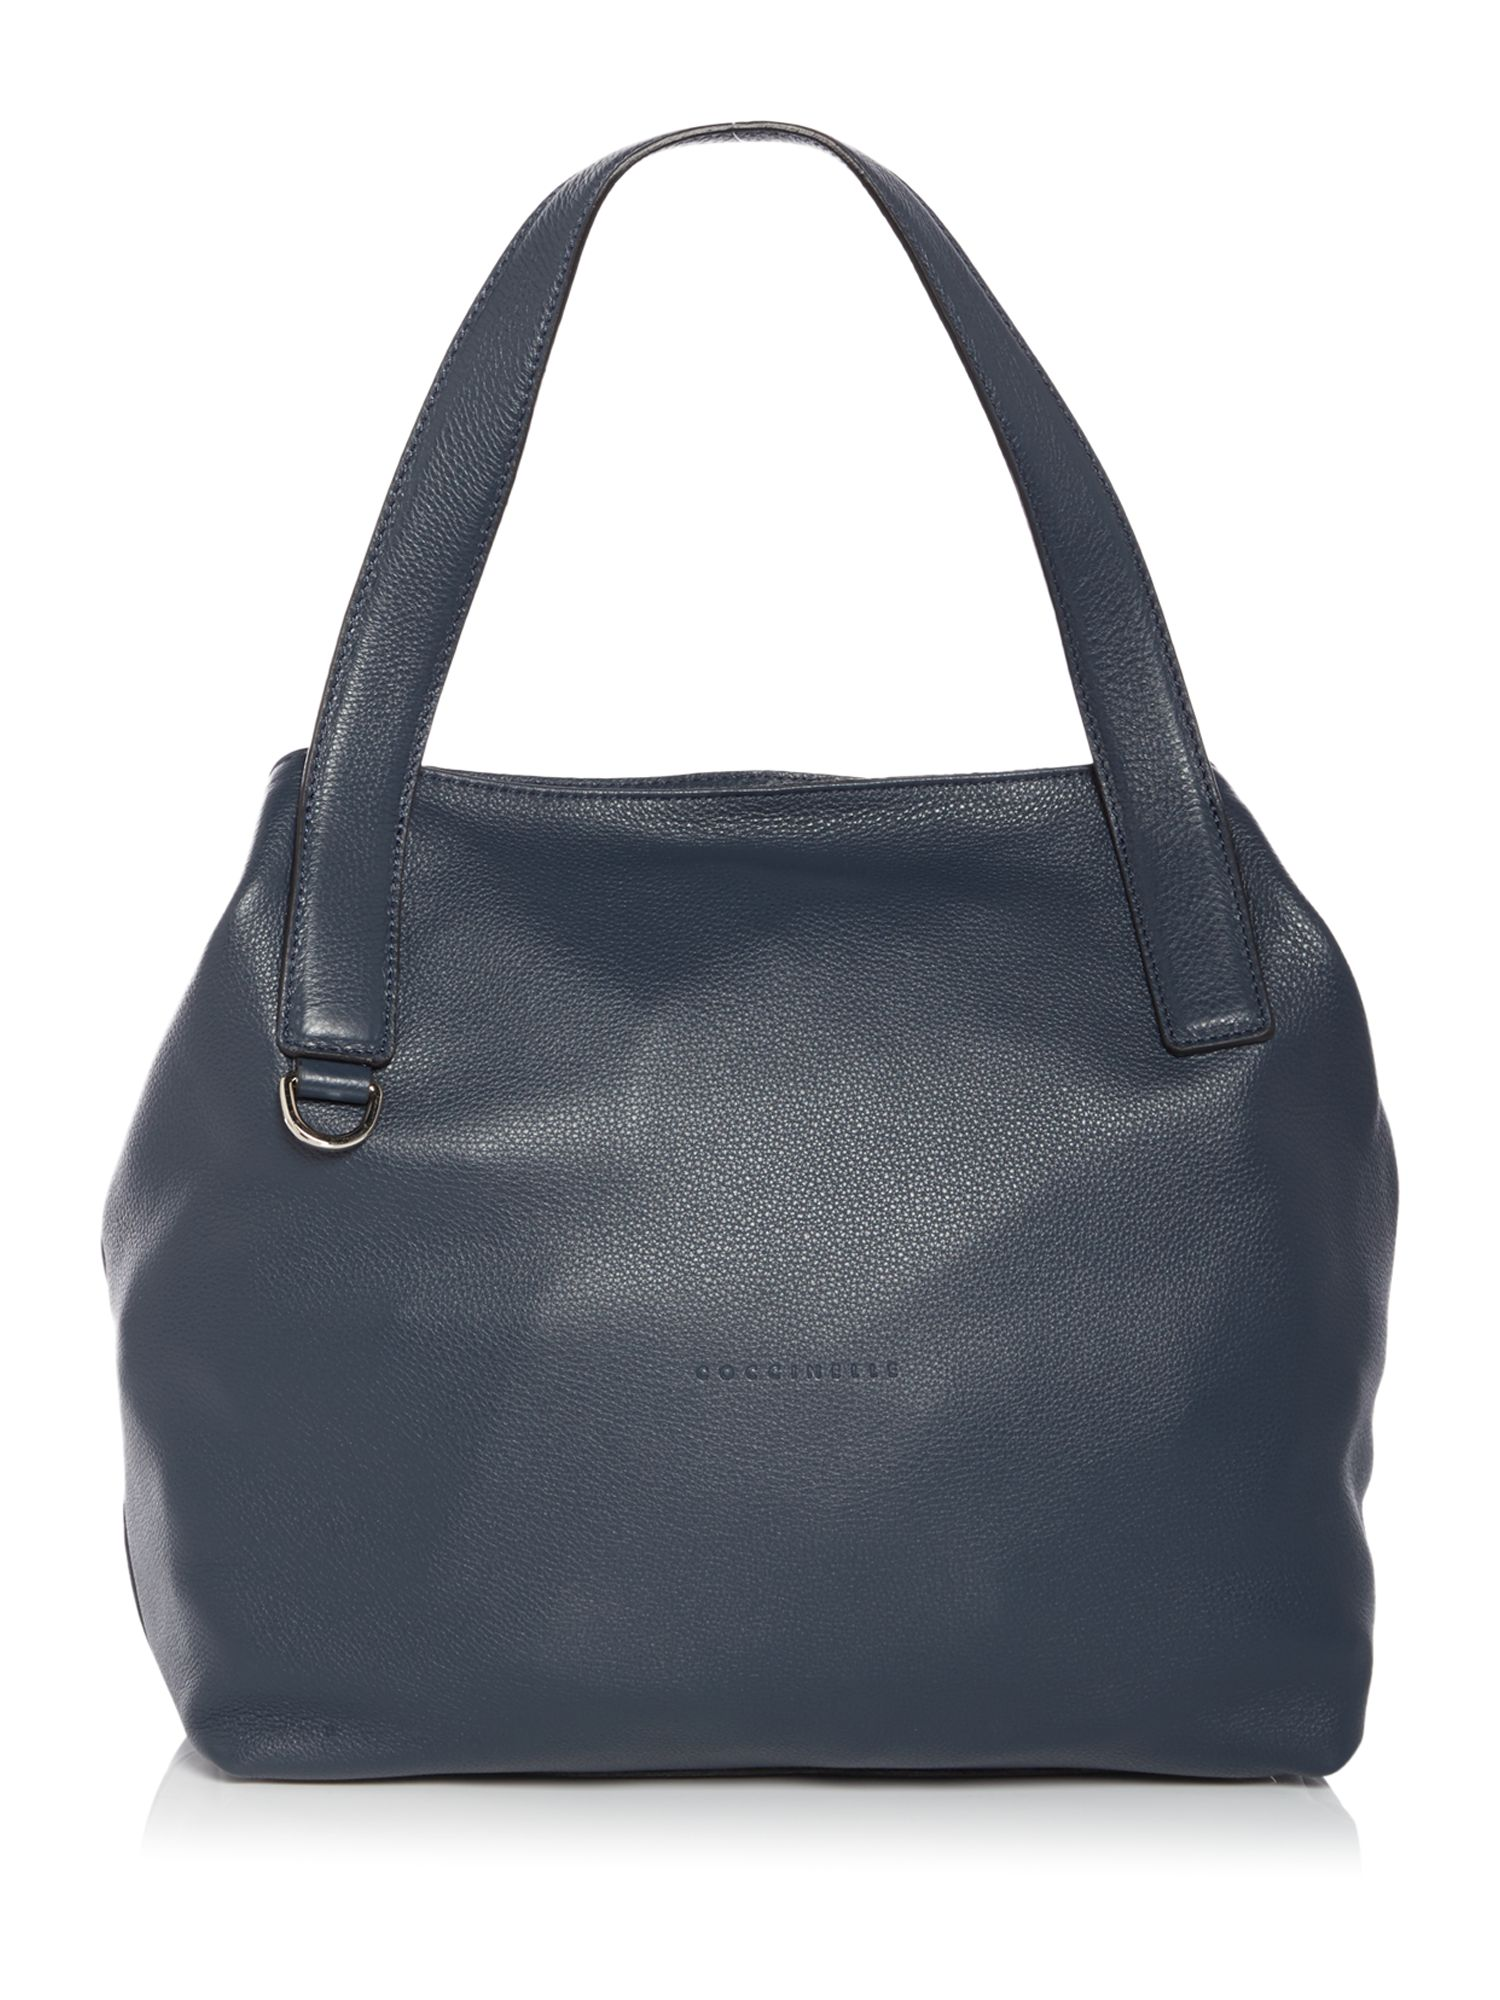 Coccinelle Coccinelle Mila Navy Hobo Bag, Navy